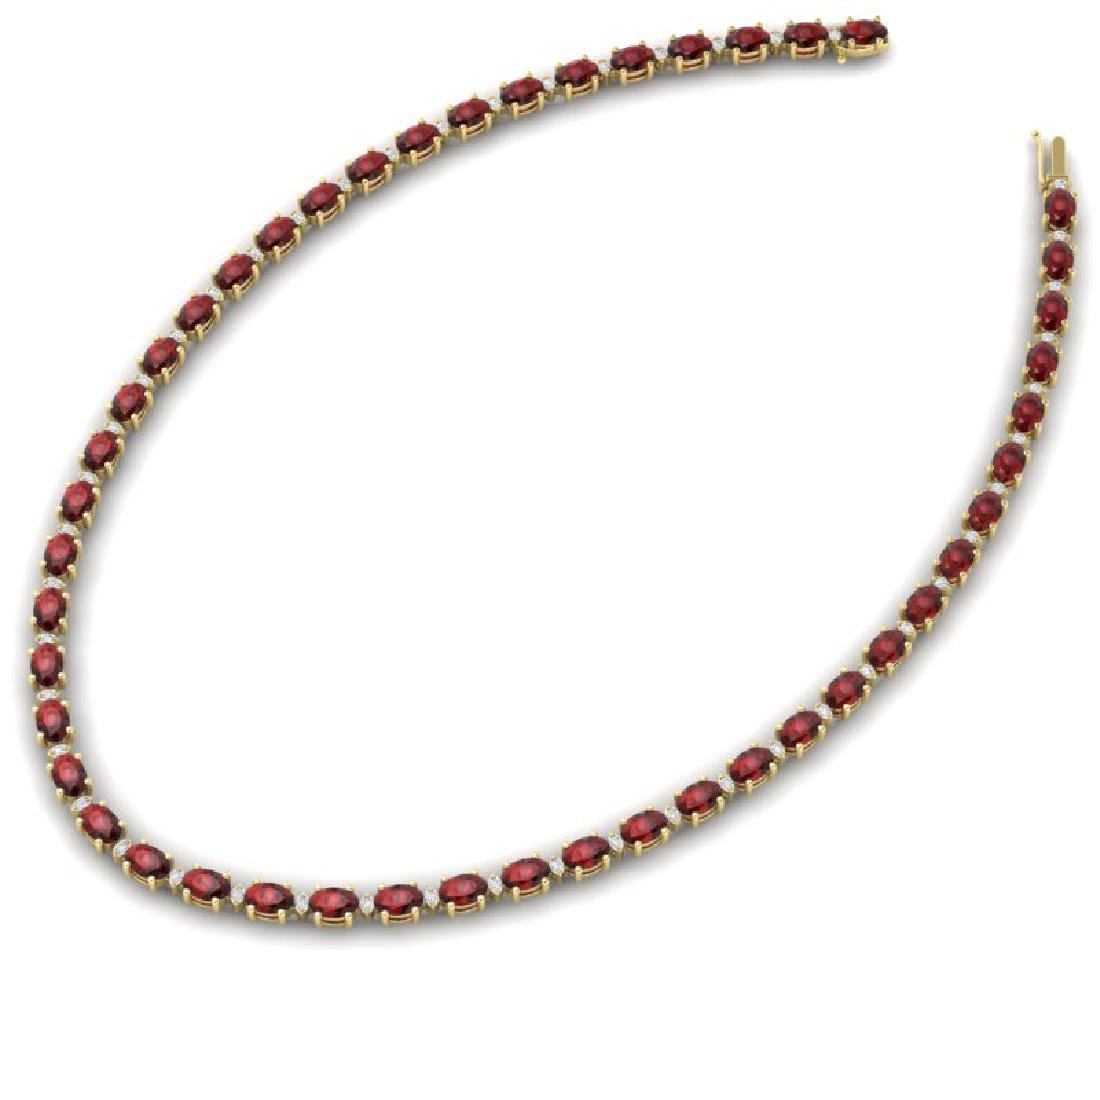 33 CTW Garnet & VS/SI Diamond Eternity Tennis Necklace - 2